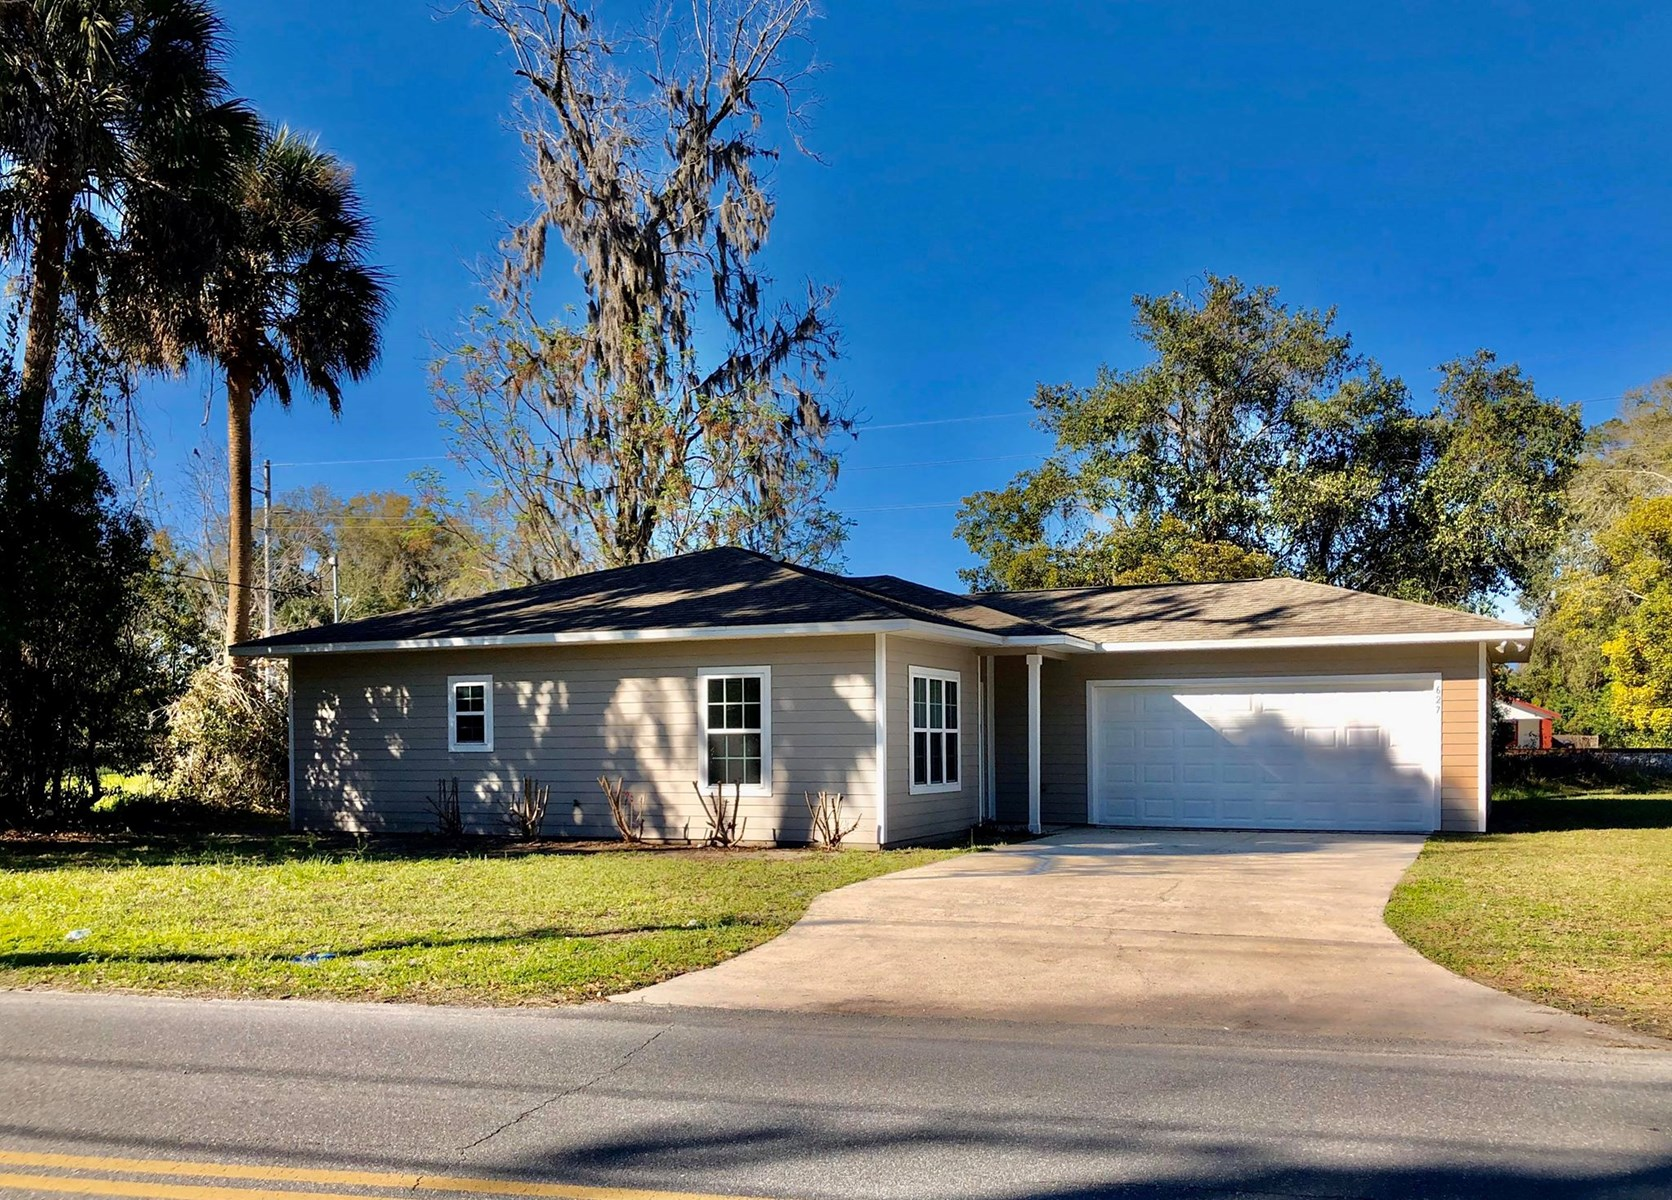 FOR SALE - Perfect 2/2 Starter Home in Lake City, Florida